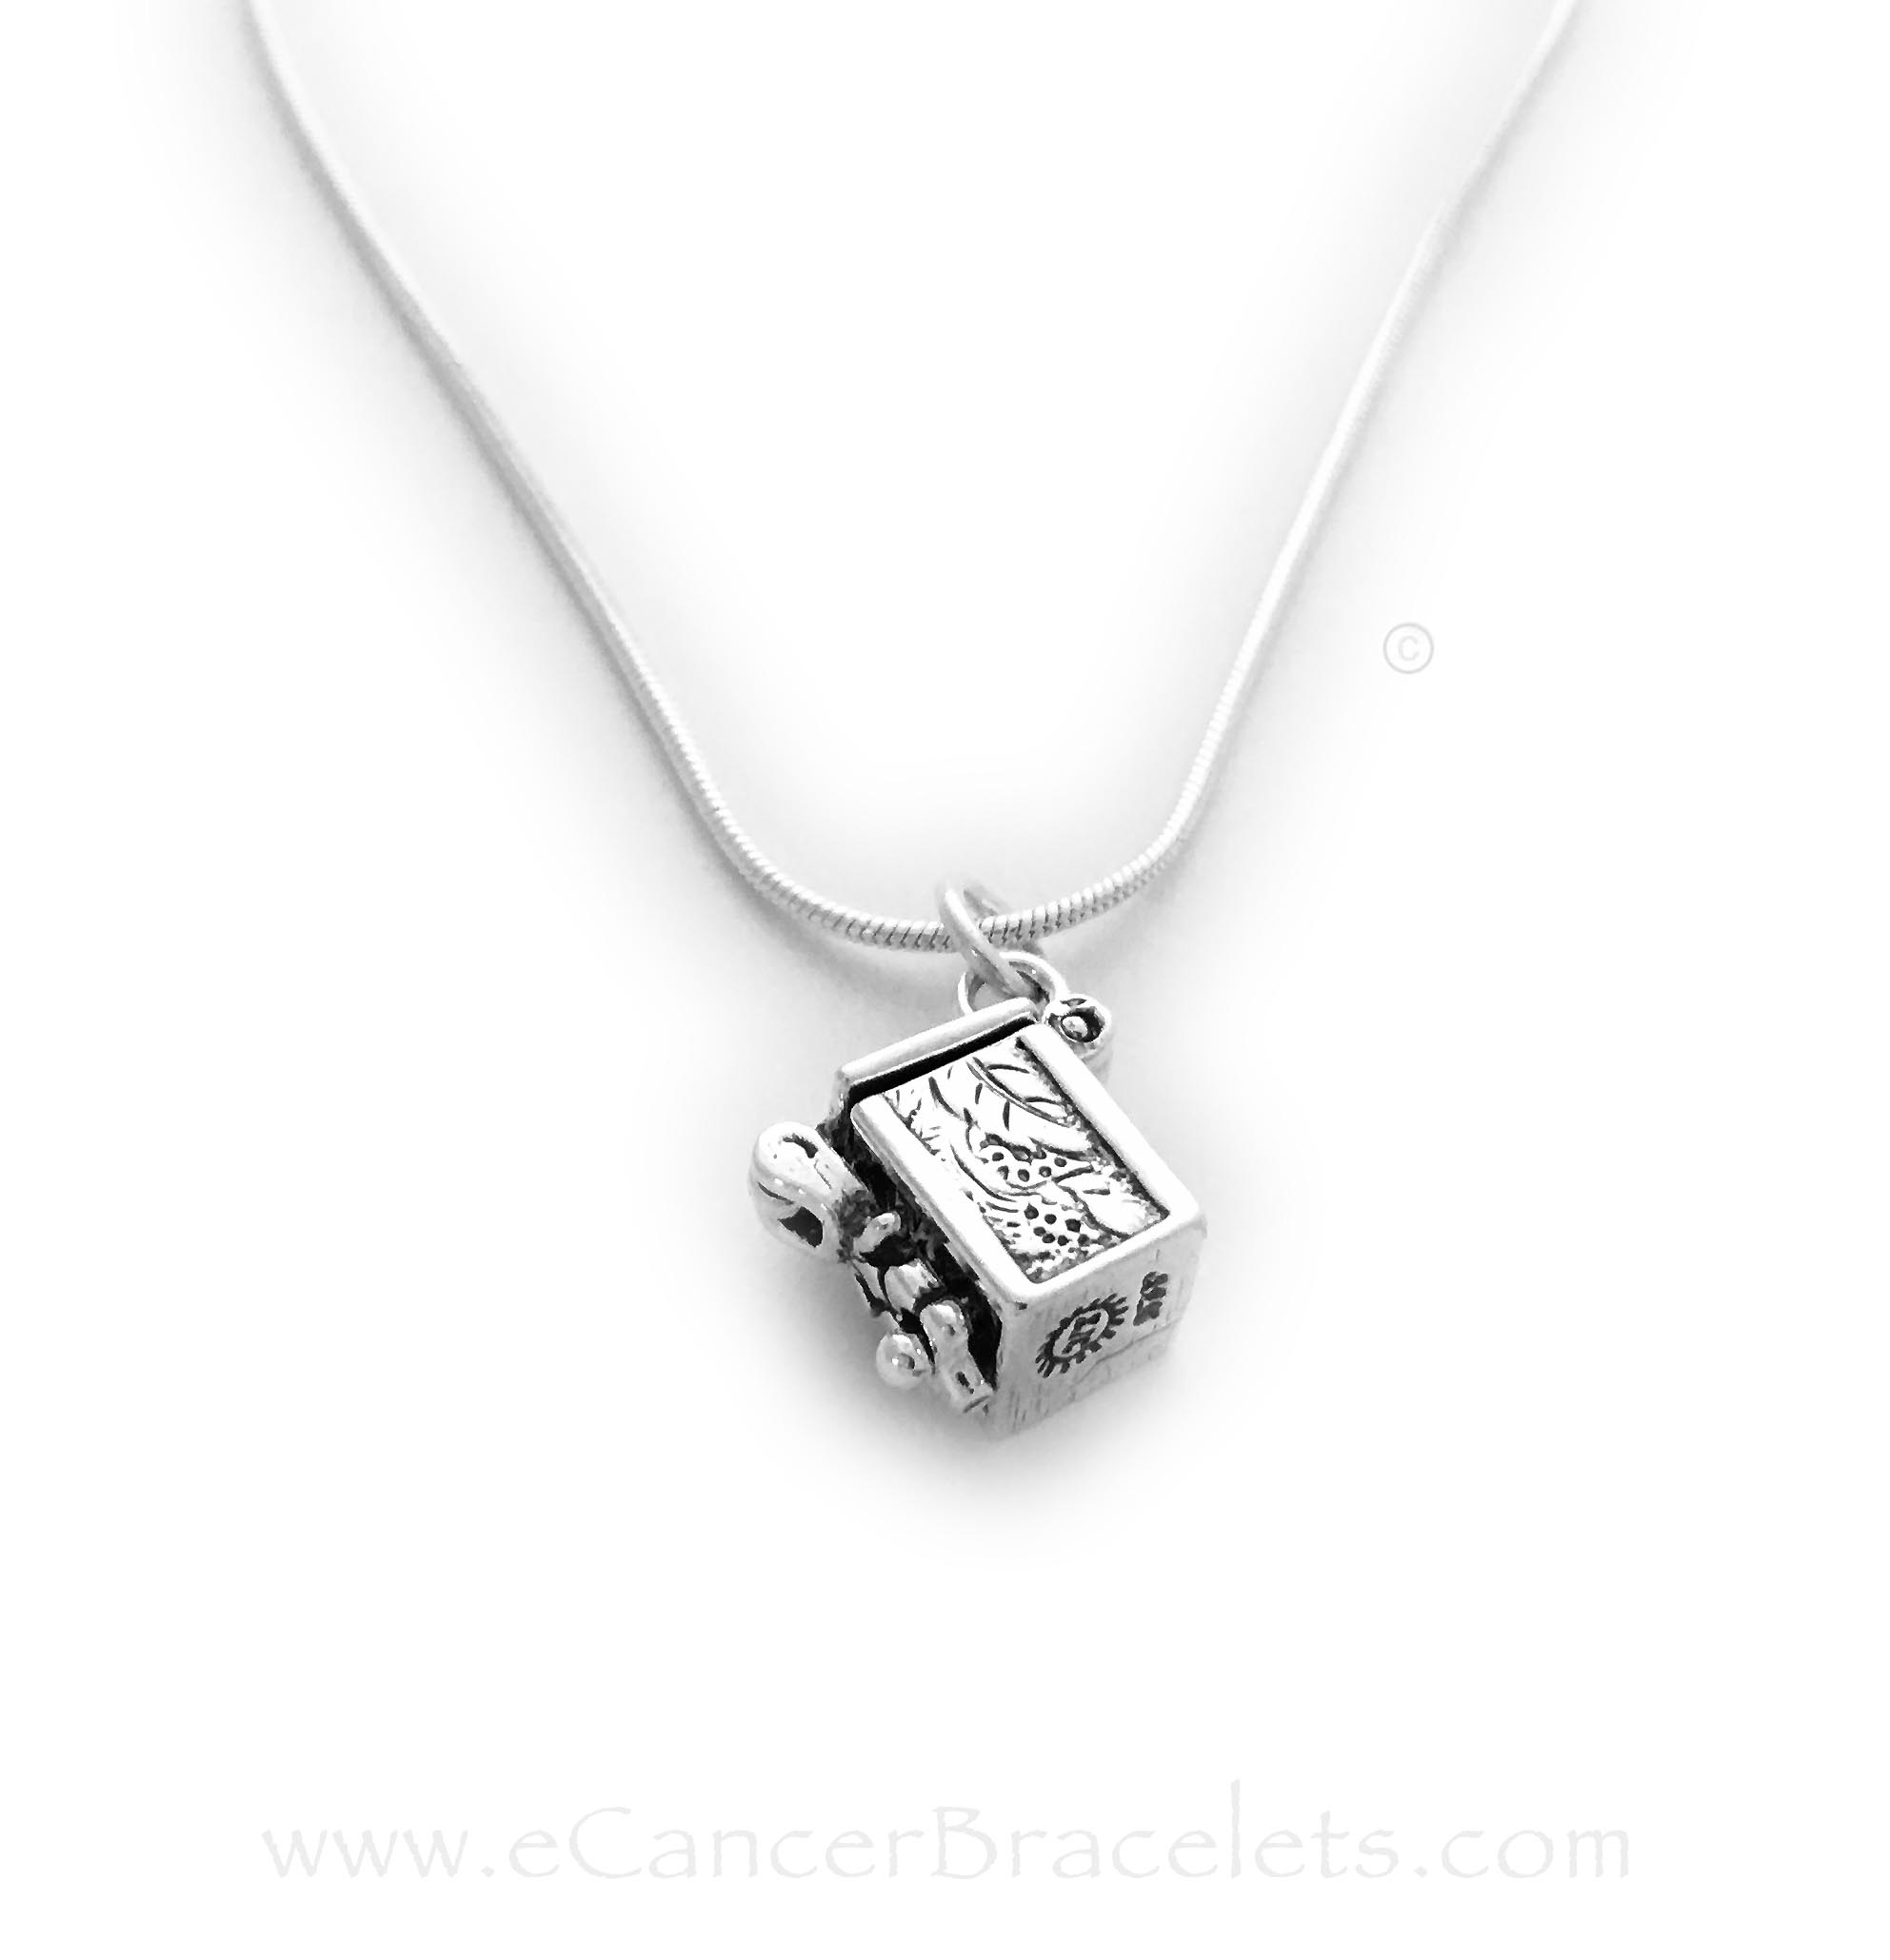 Side View of Sterling Silver Prayer Box Charm on a Sterling Silver Chain